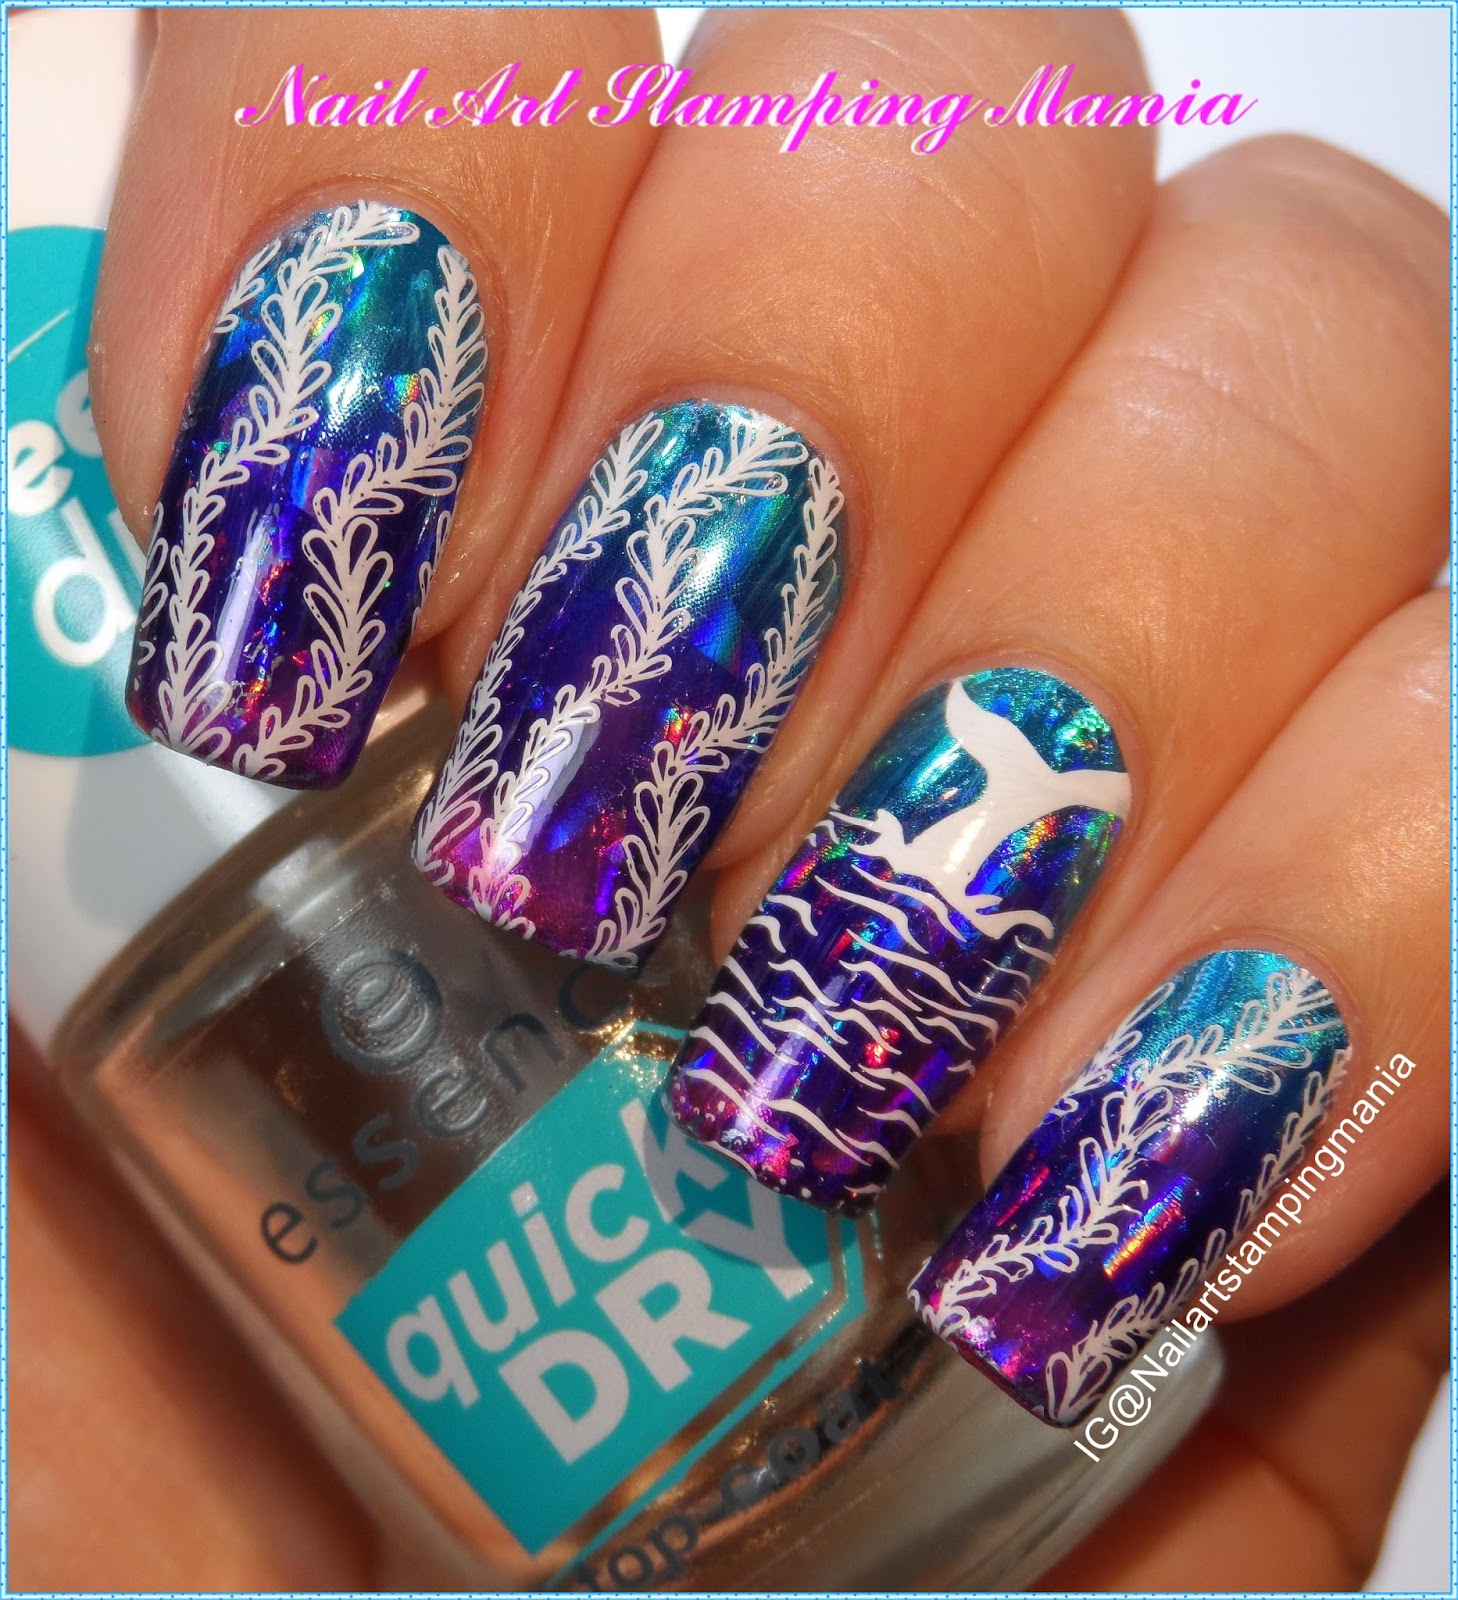 Nail Art Stamping Mania: Ocean Manicure with Nail Foil and Creative ...